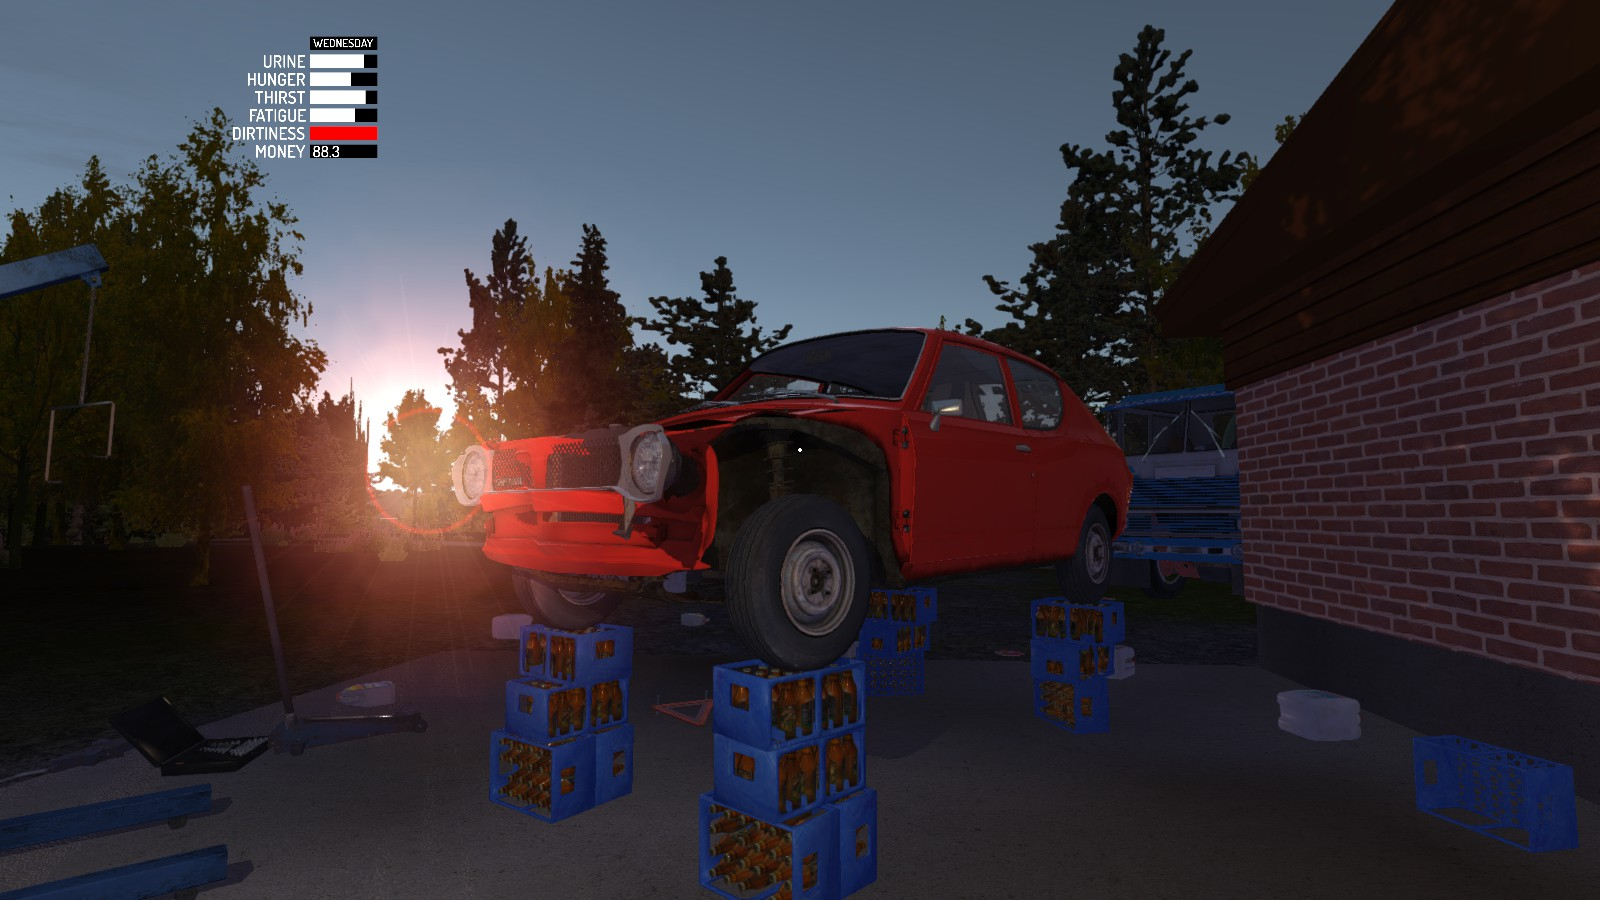 My 4 Post Lift In My Summer Car